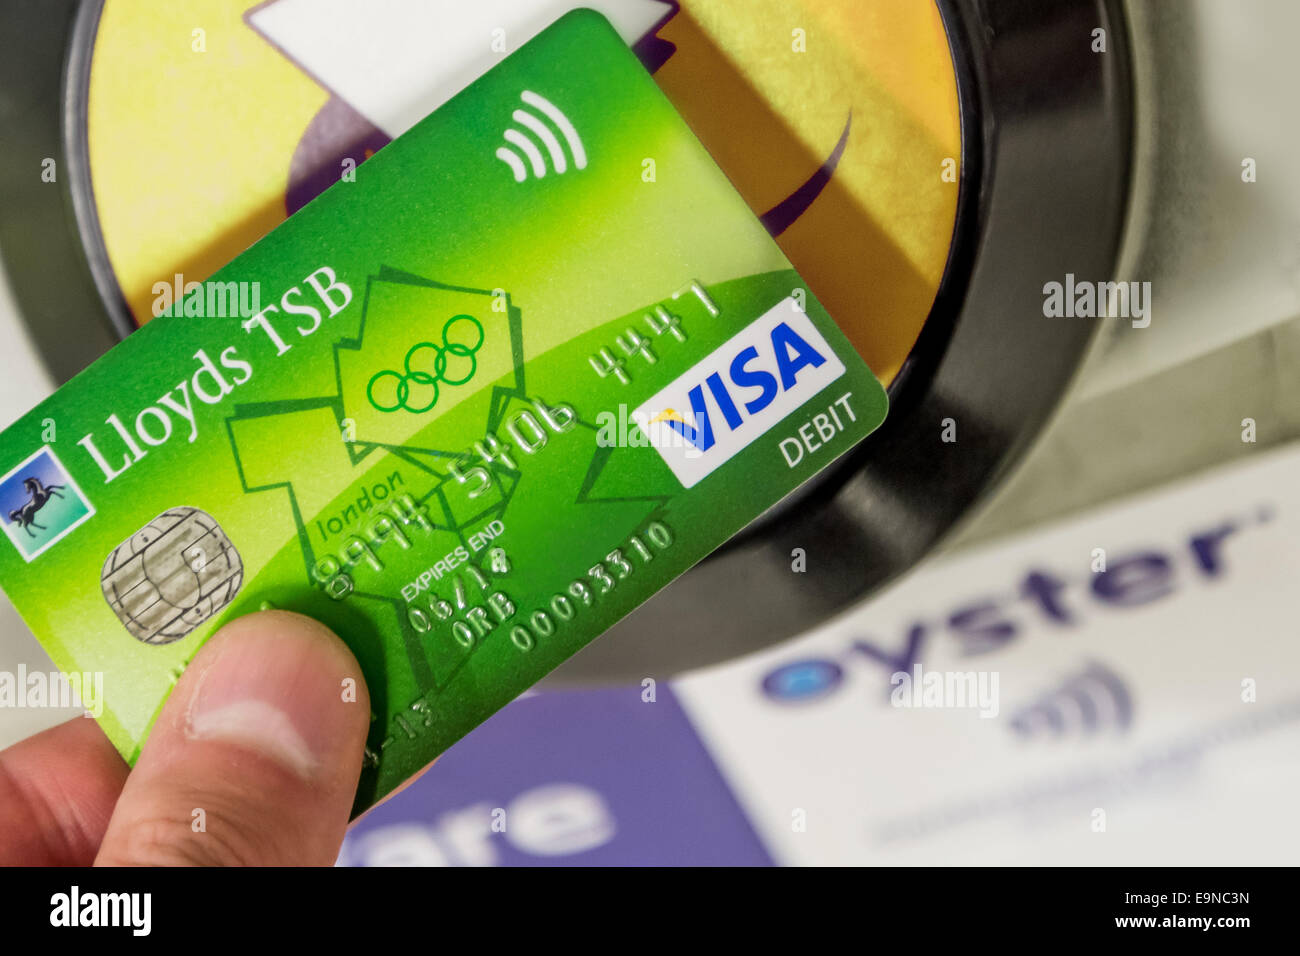 Lloyds tsb visa card stock photos lloyds tsb visa card stock contactless lloyds tsb visa card being used for travel payment at london underground station magicingreecefo Image collections